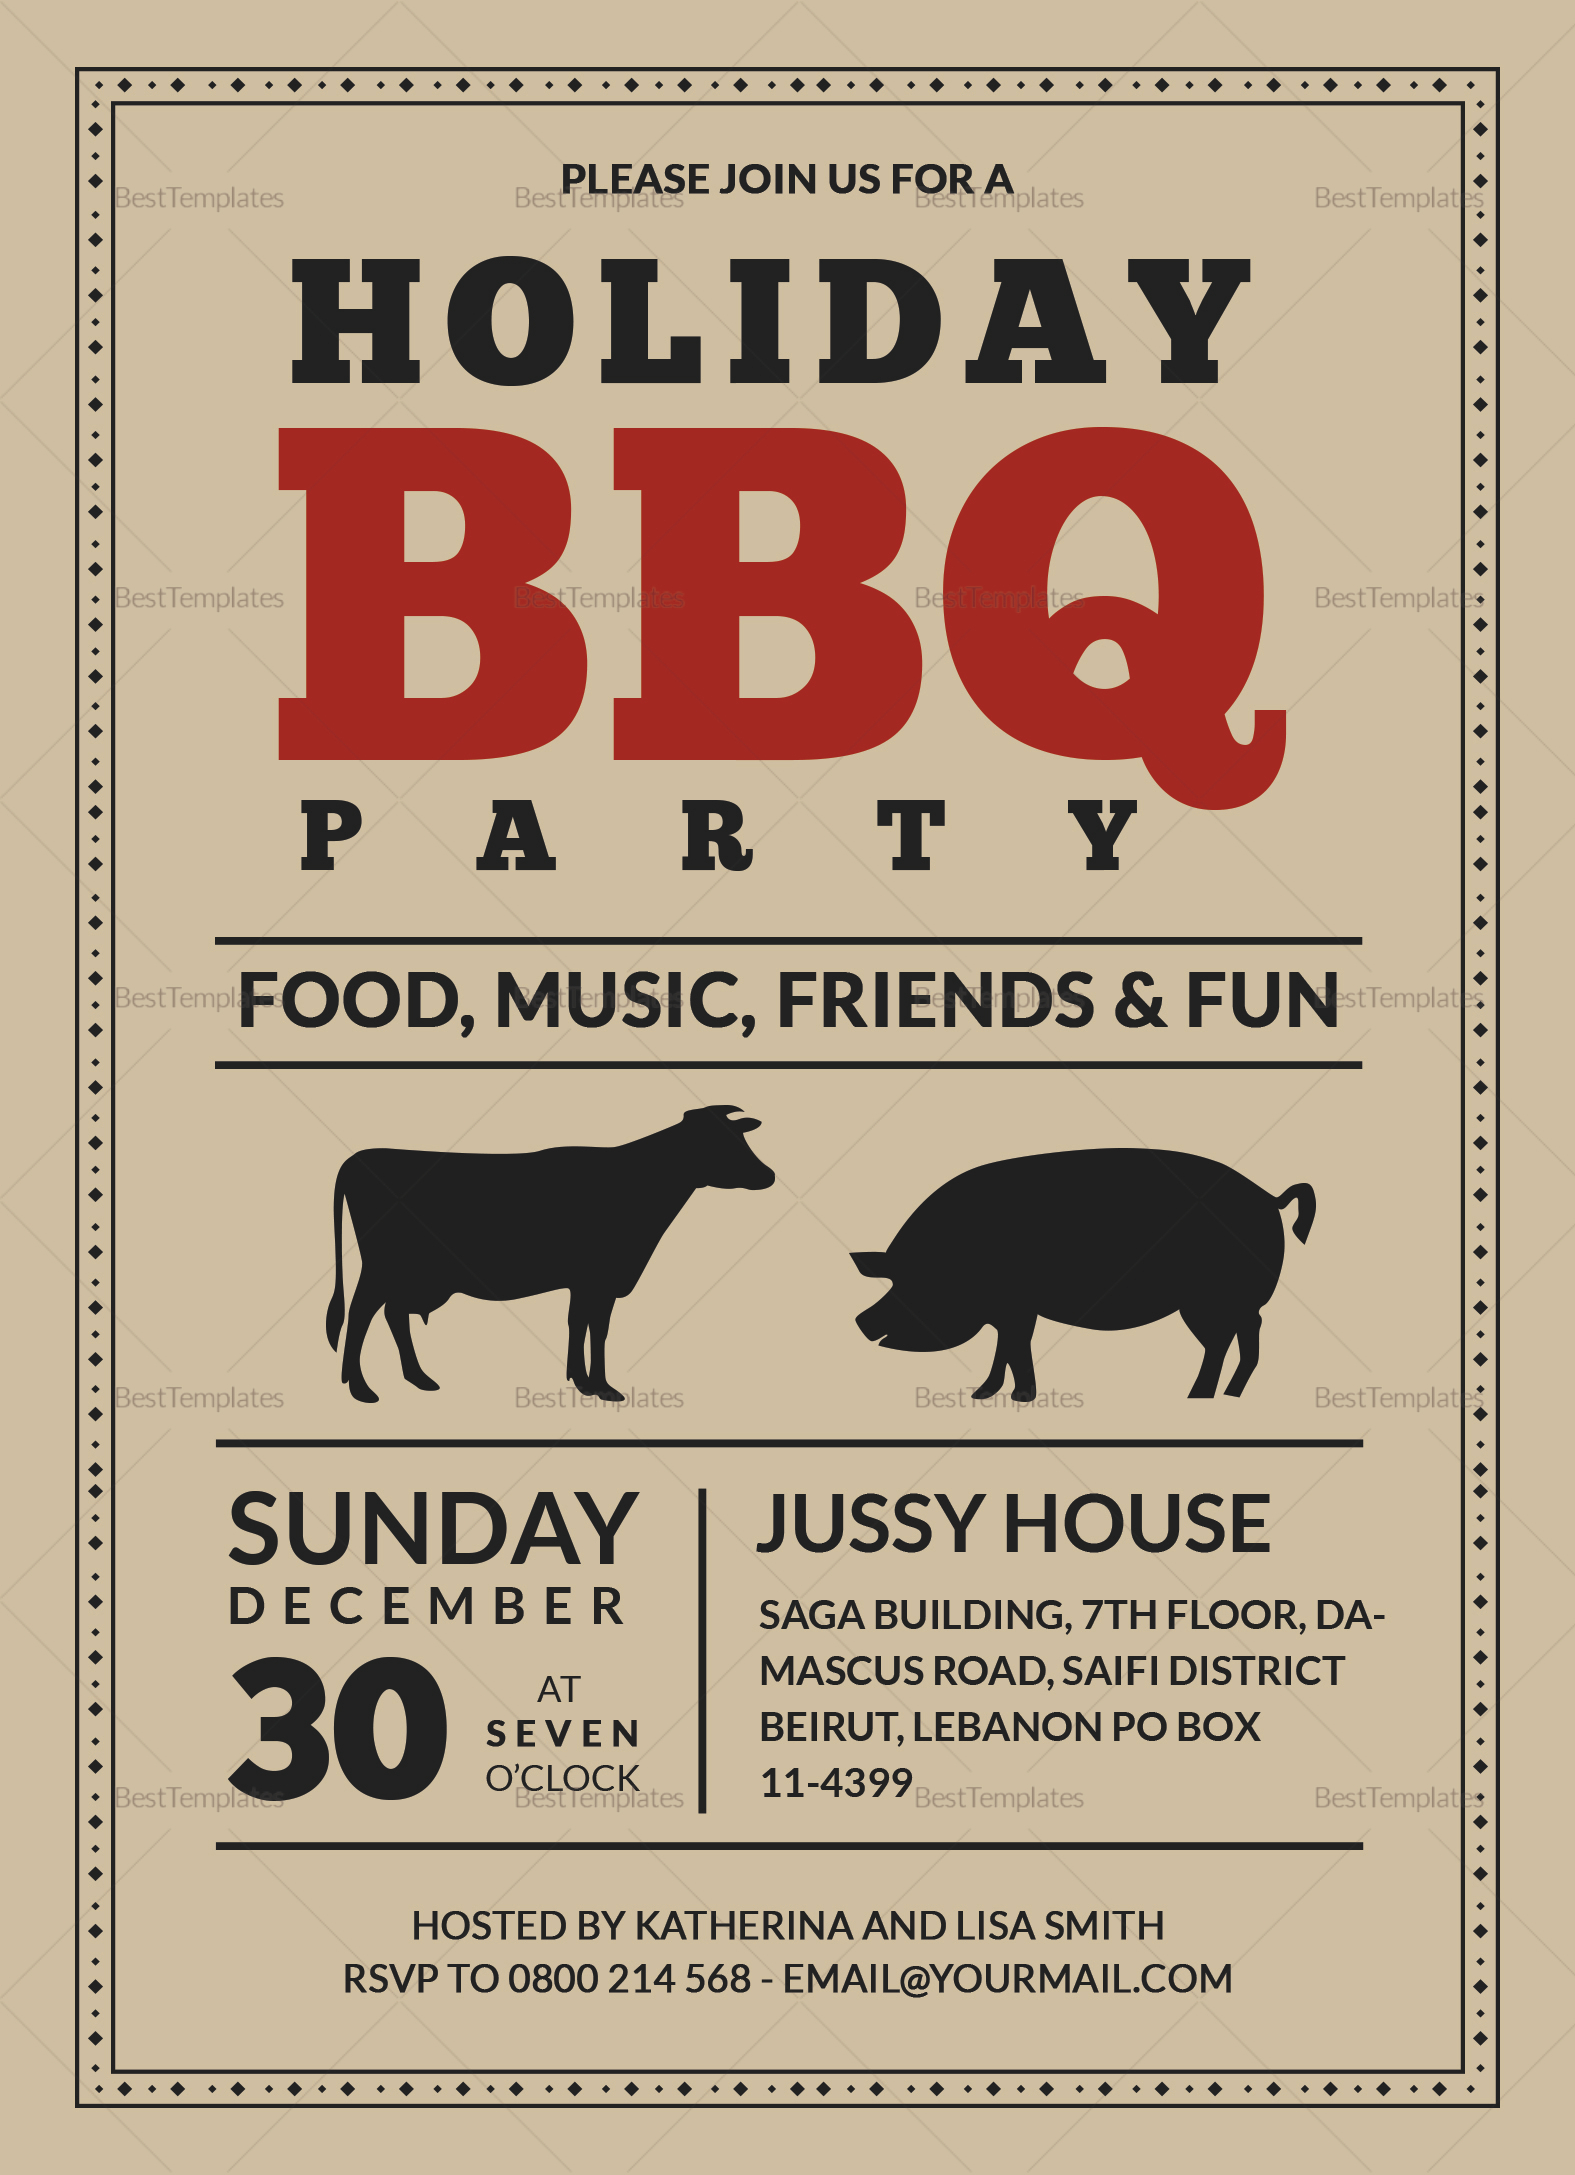 barbecue party invitation card design template in word  psd  publisher